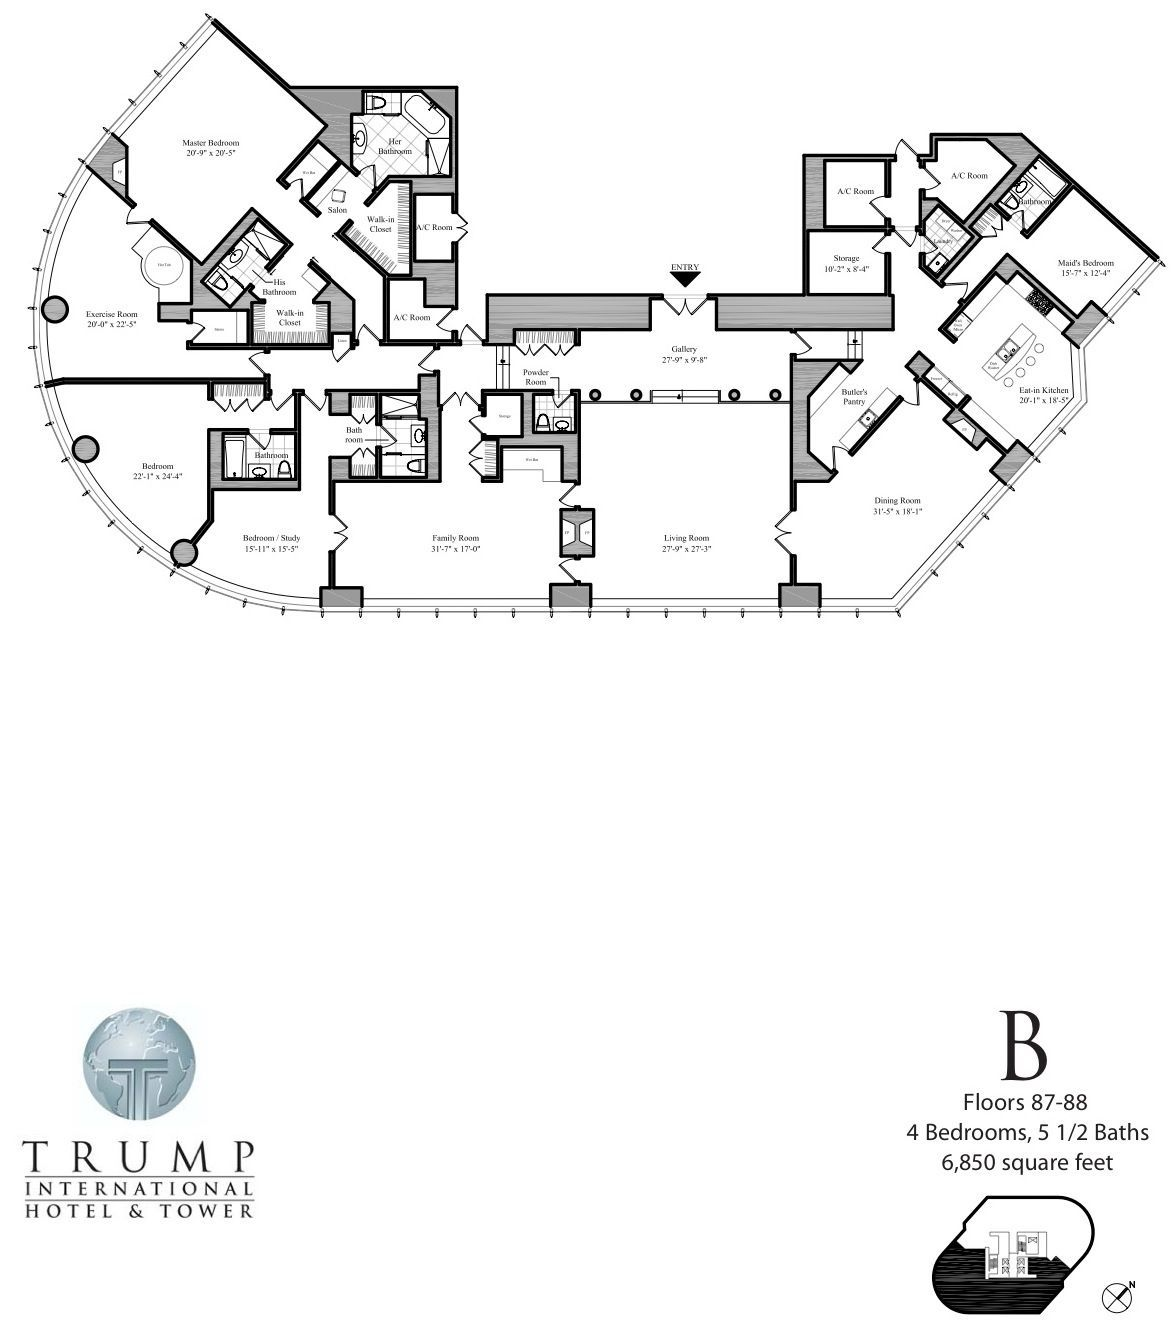 Trump International Tower And Hotel Chicago Penthouse Floor Plans Tallest Towers Trump Trump Tower Chicago Hotel Floor Plan Architectural Floor Plans